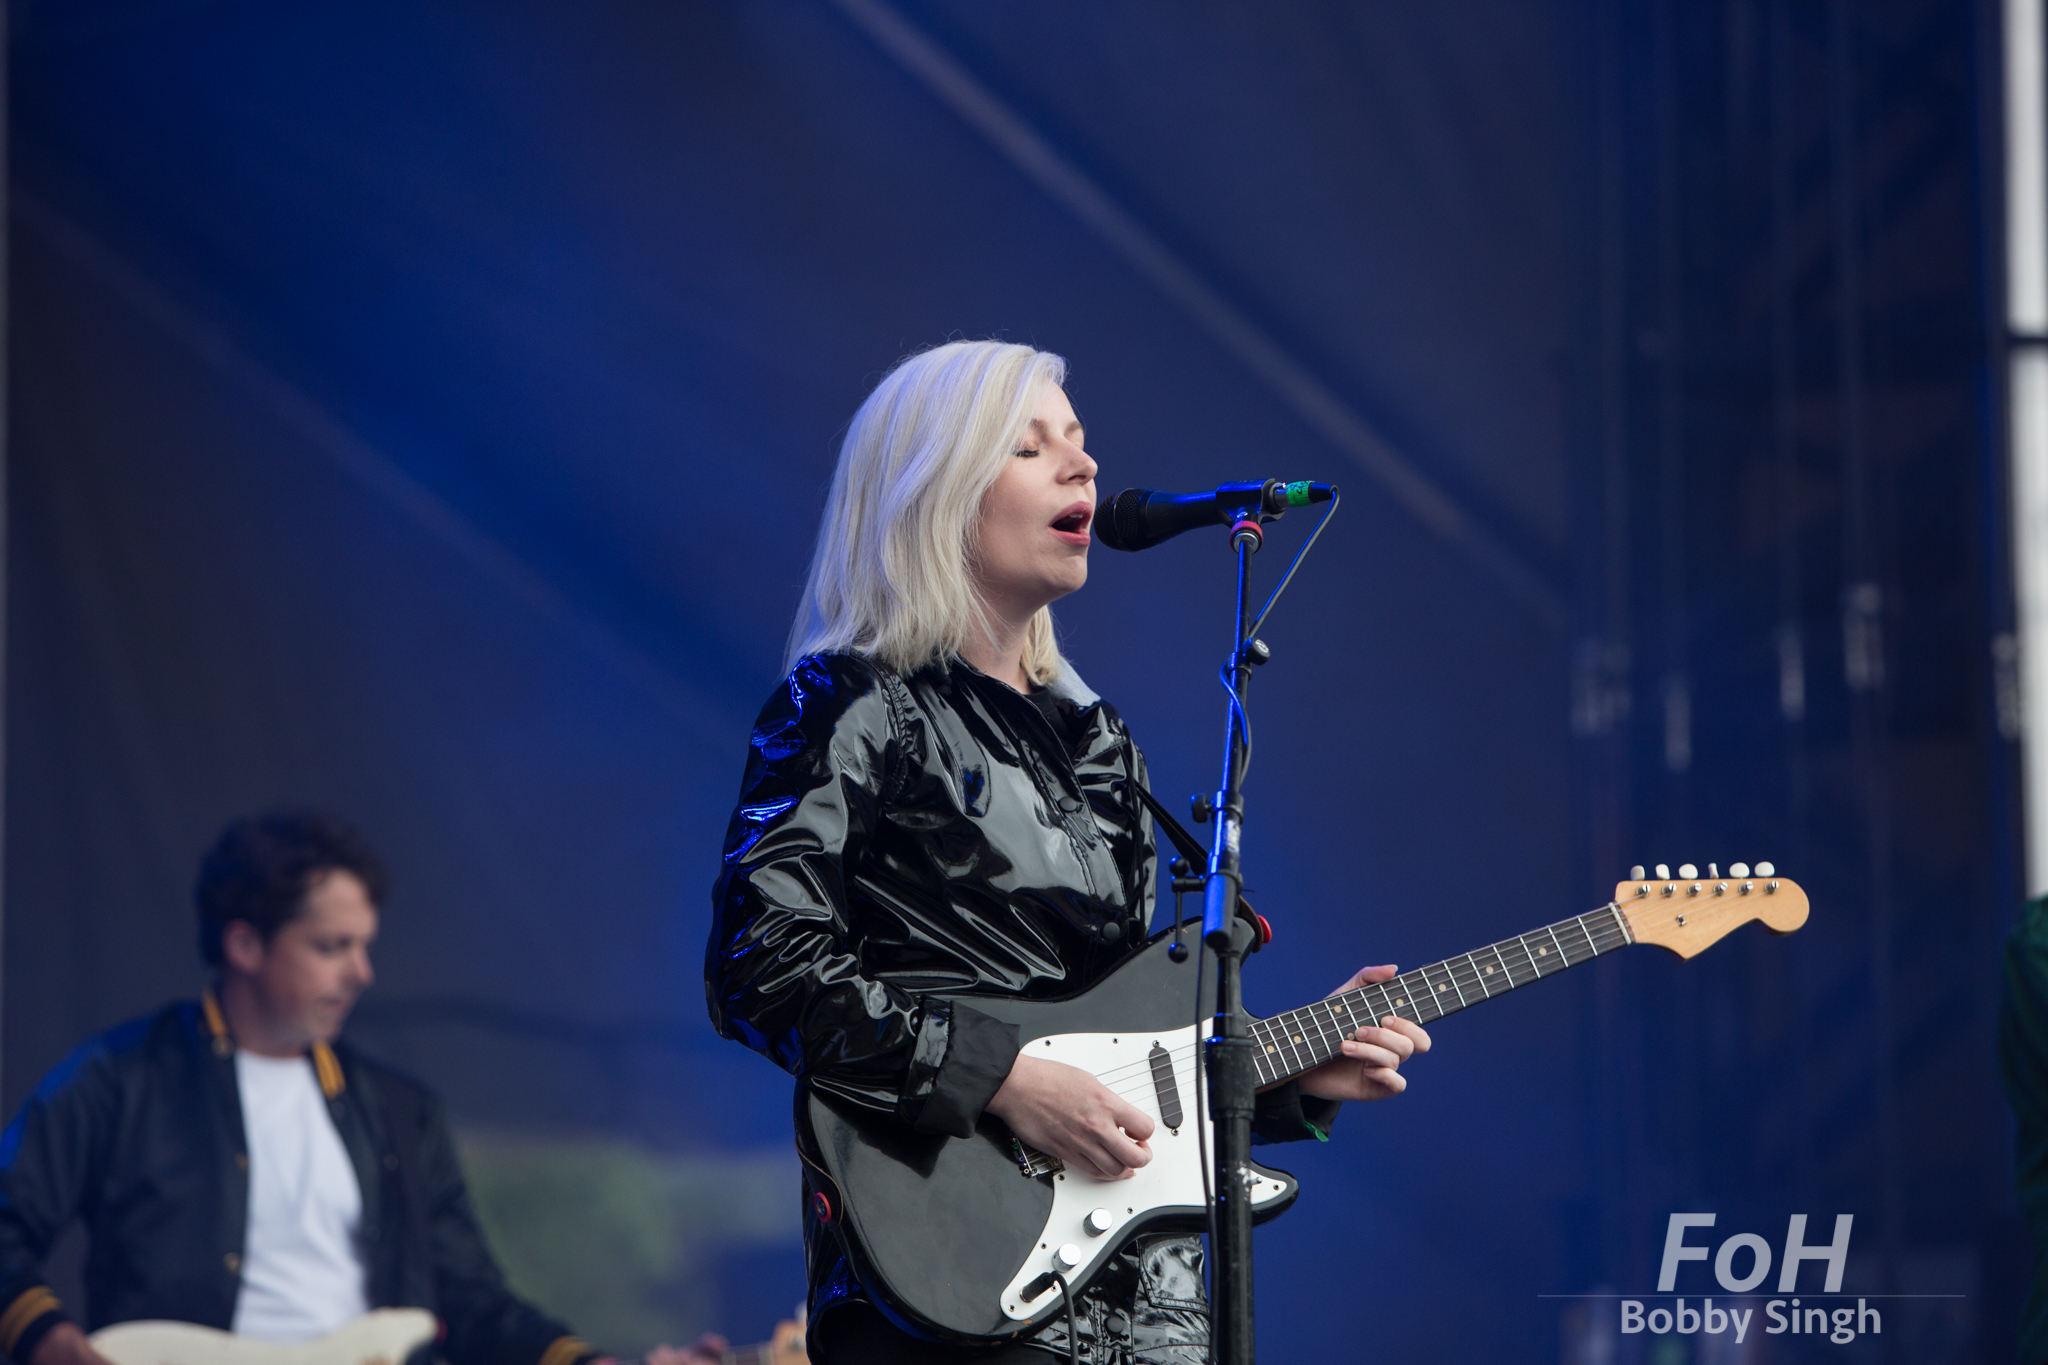 Toronto-based pop band Alvvays performing at the 2018 Field Trip Music & Arts Festival in Toronto